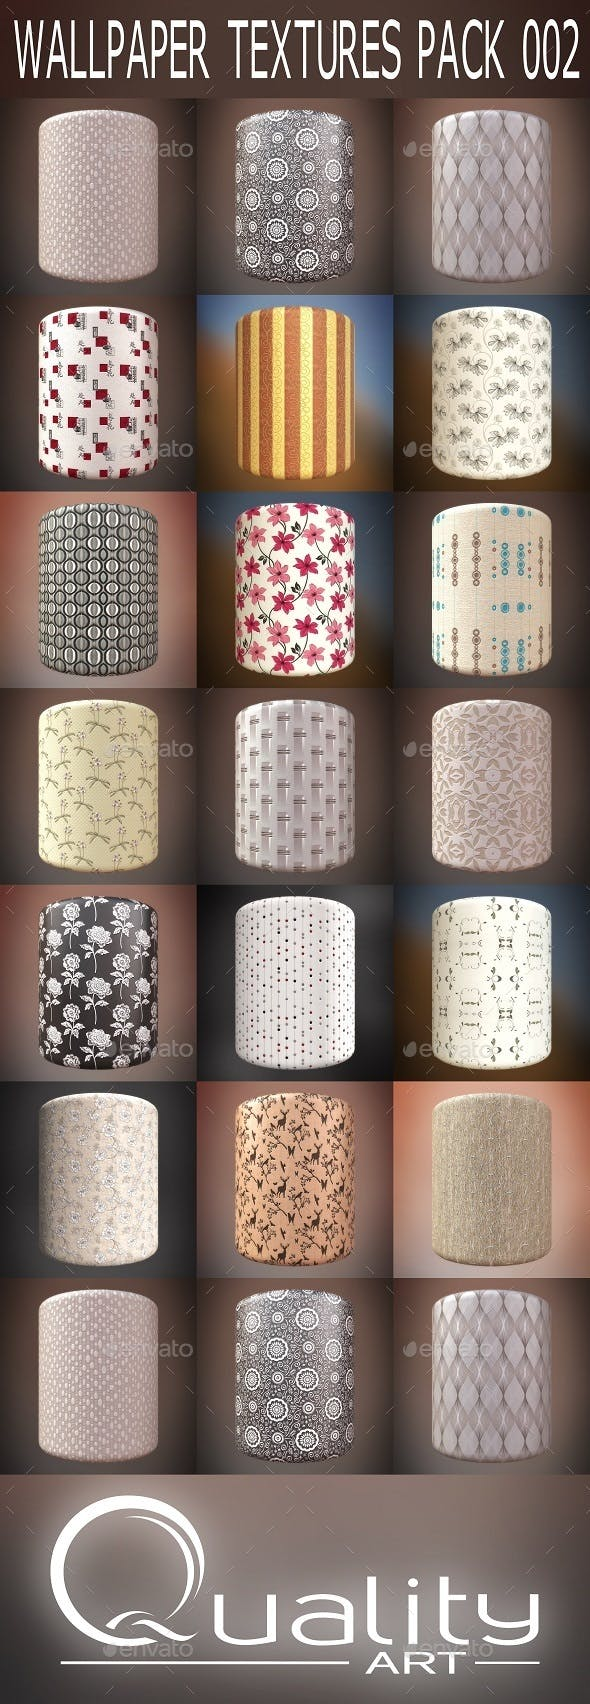 Wallpaper Textures Pack 002 - 3DOcean Item for Sale